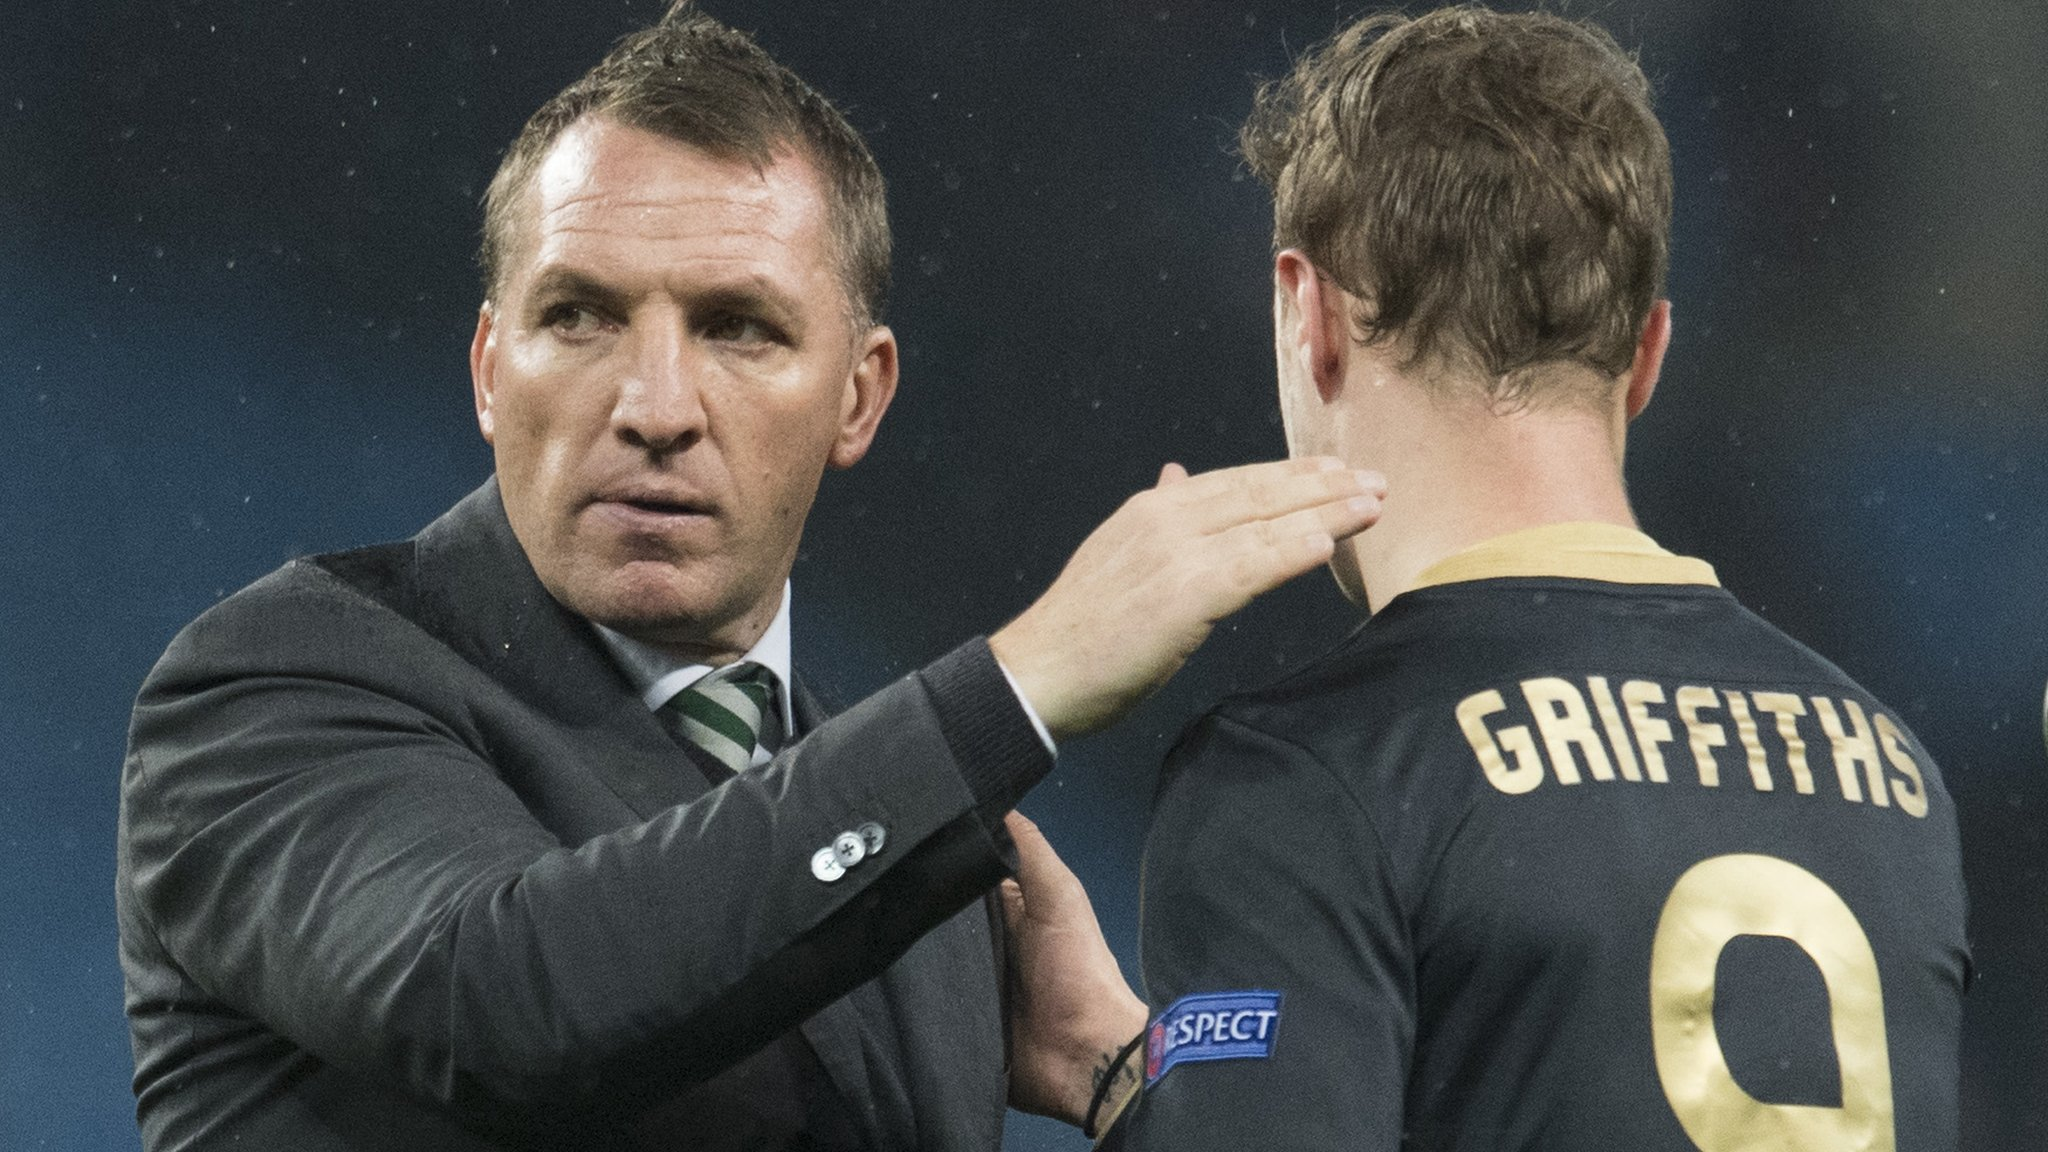 Champions League games 'set Celtic's standard'